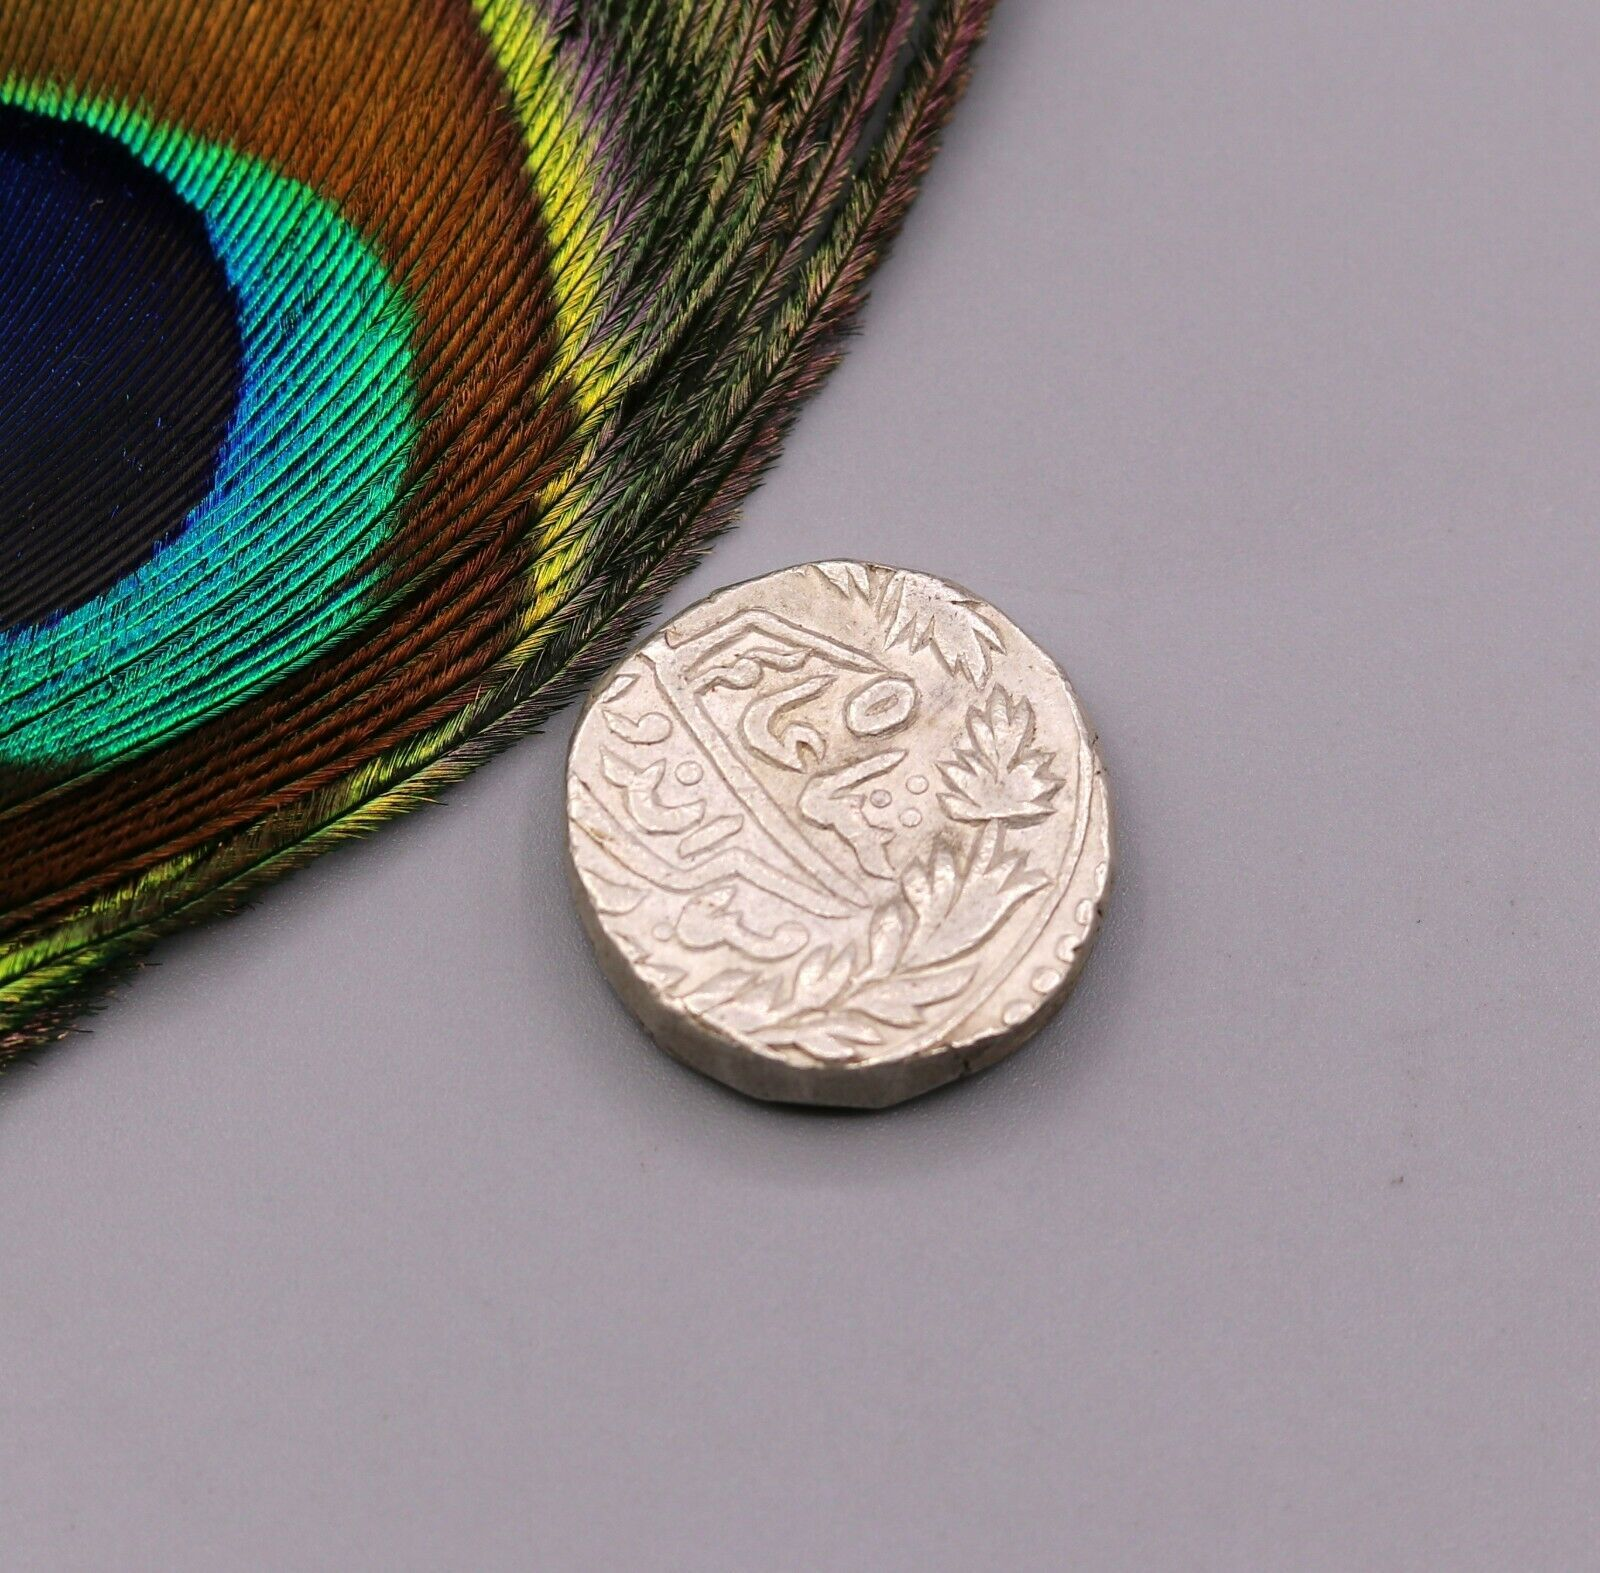 HANDMADE SOLID SILVER COIN GINNY SUM PATTERN PRINT JEWELRY MAKING COIN  cn14